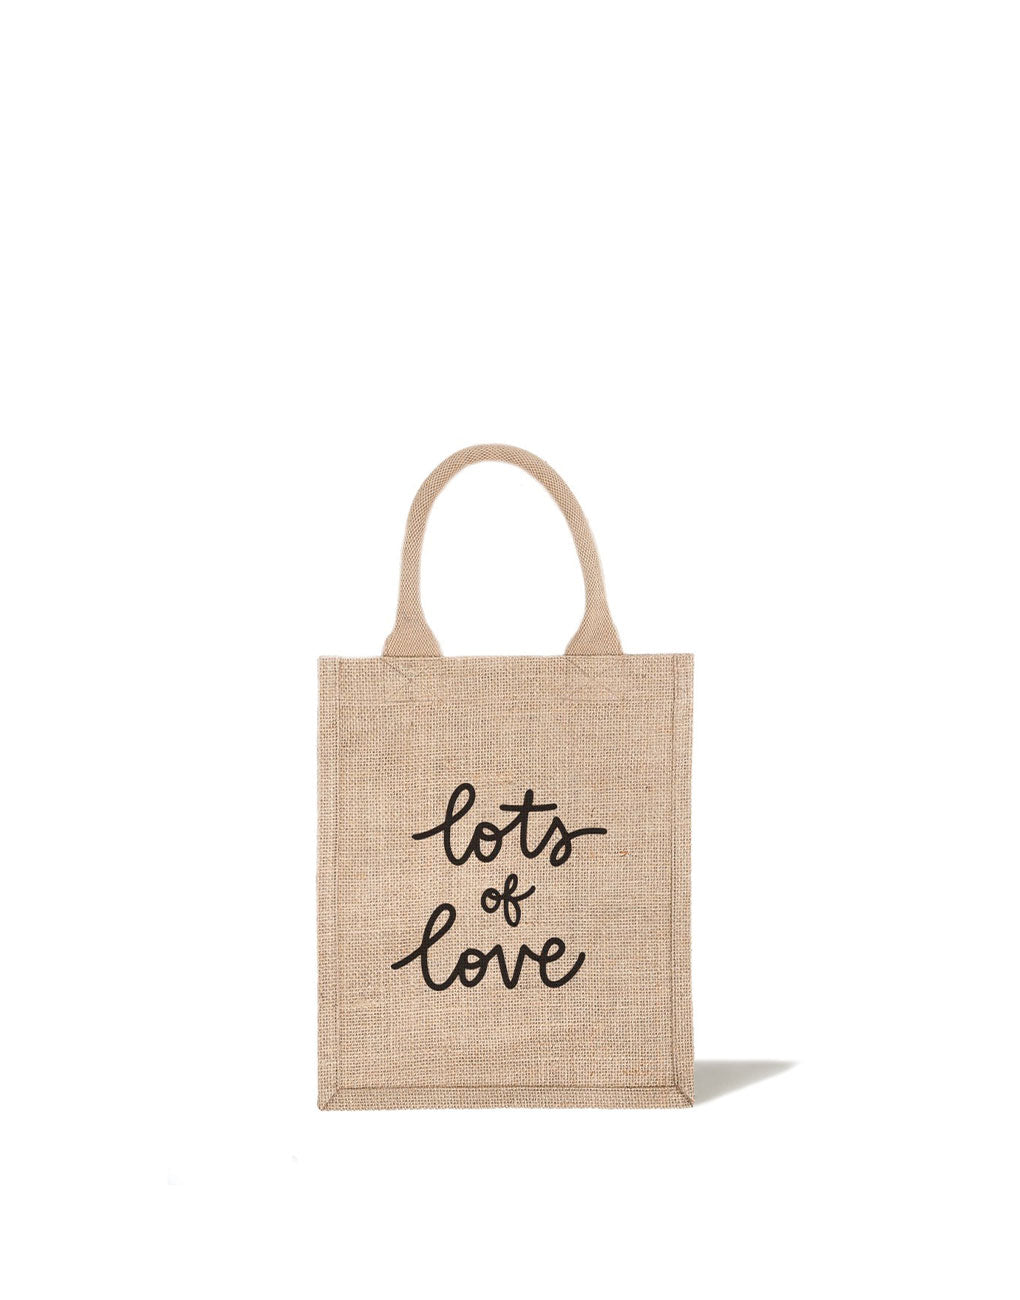 Medium Lots Of Love Reusable Gift Tote In Black Font | The Little Market